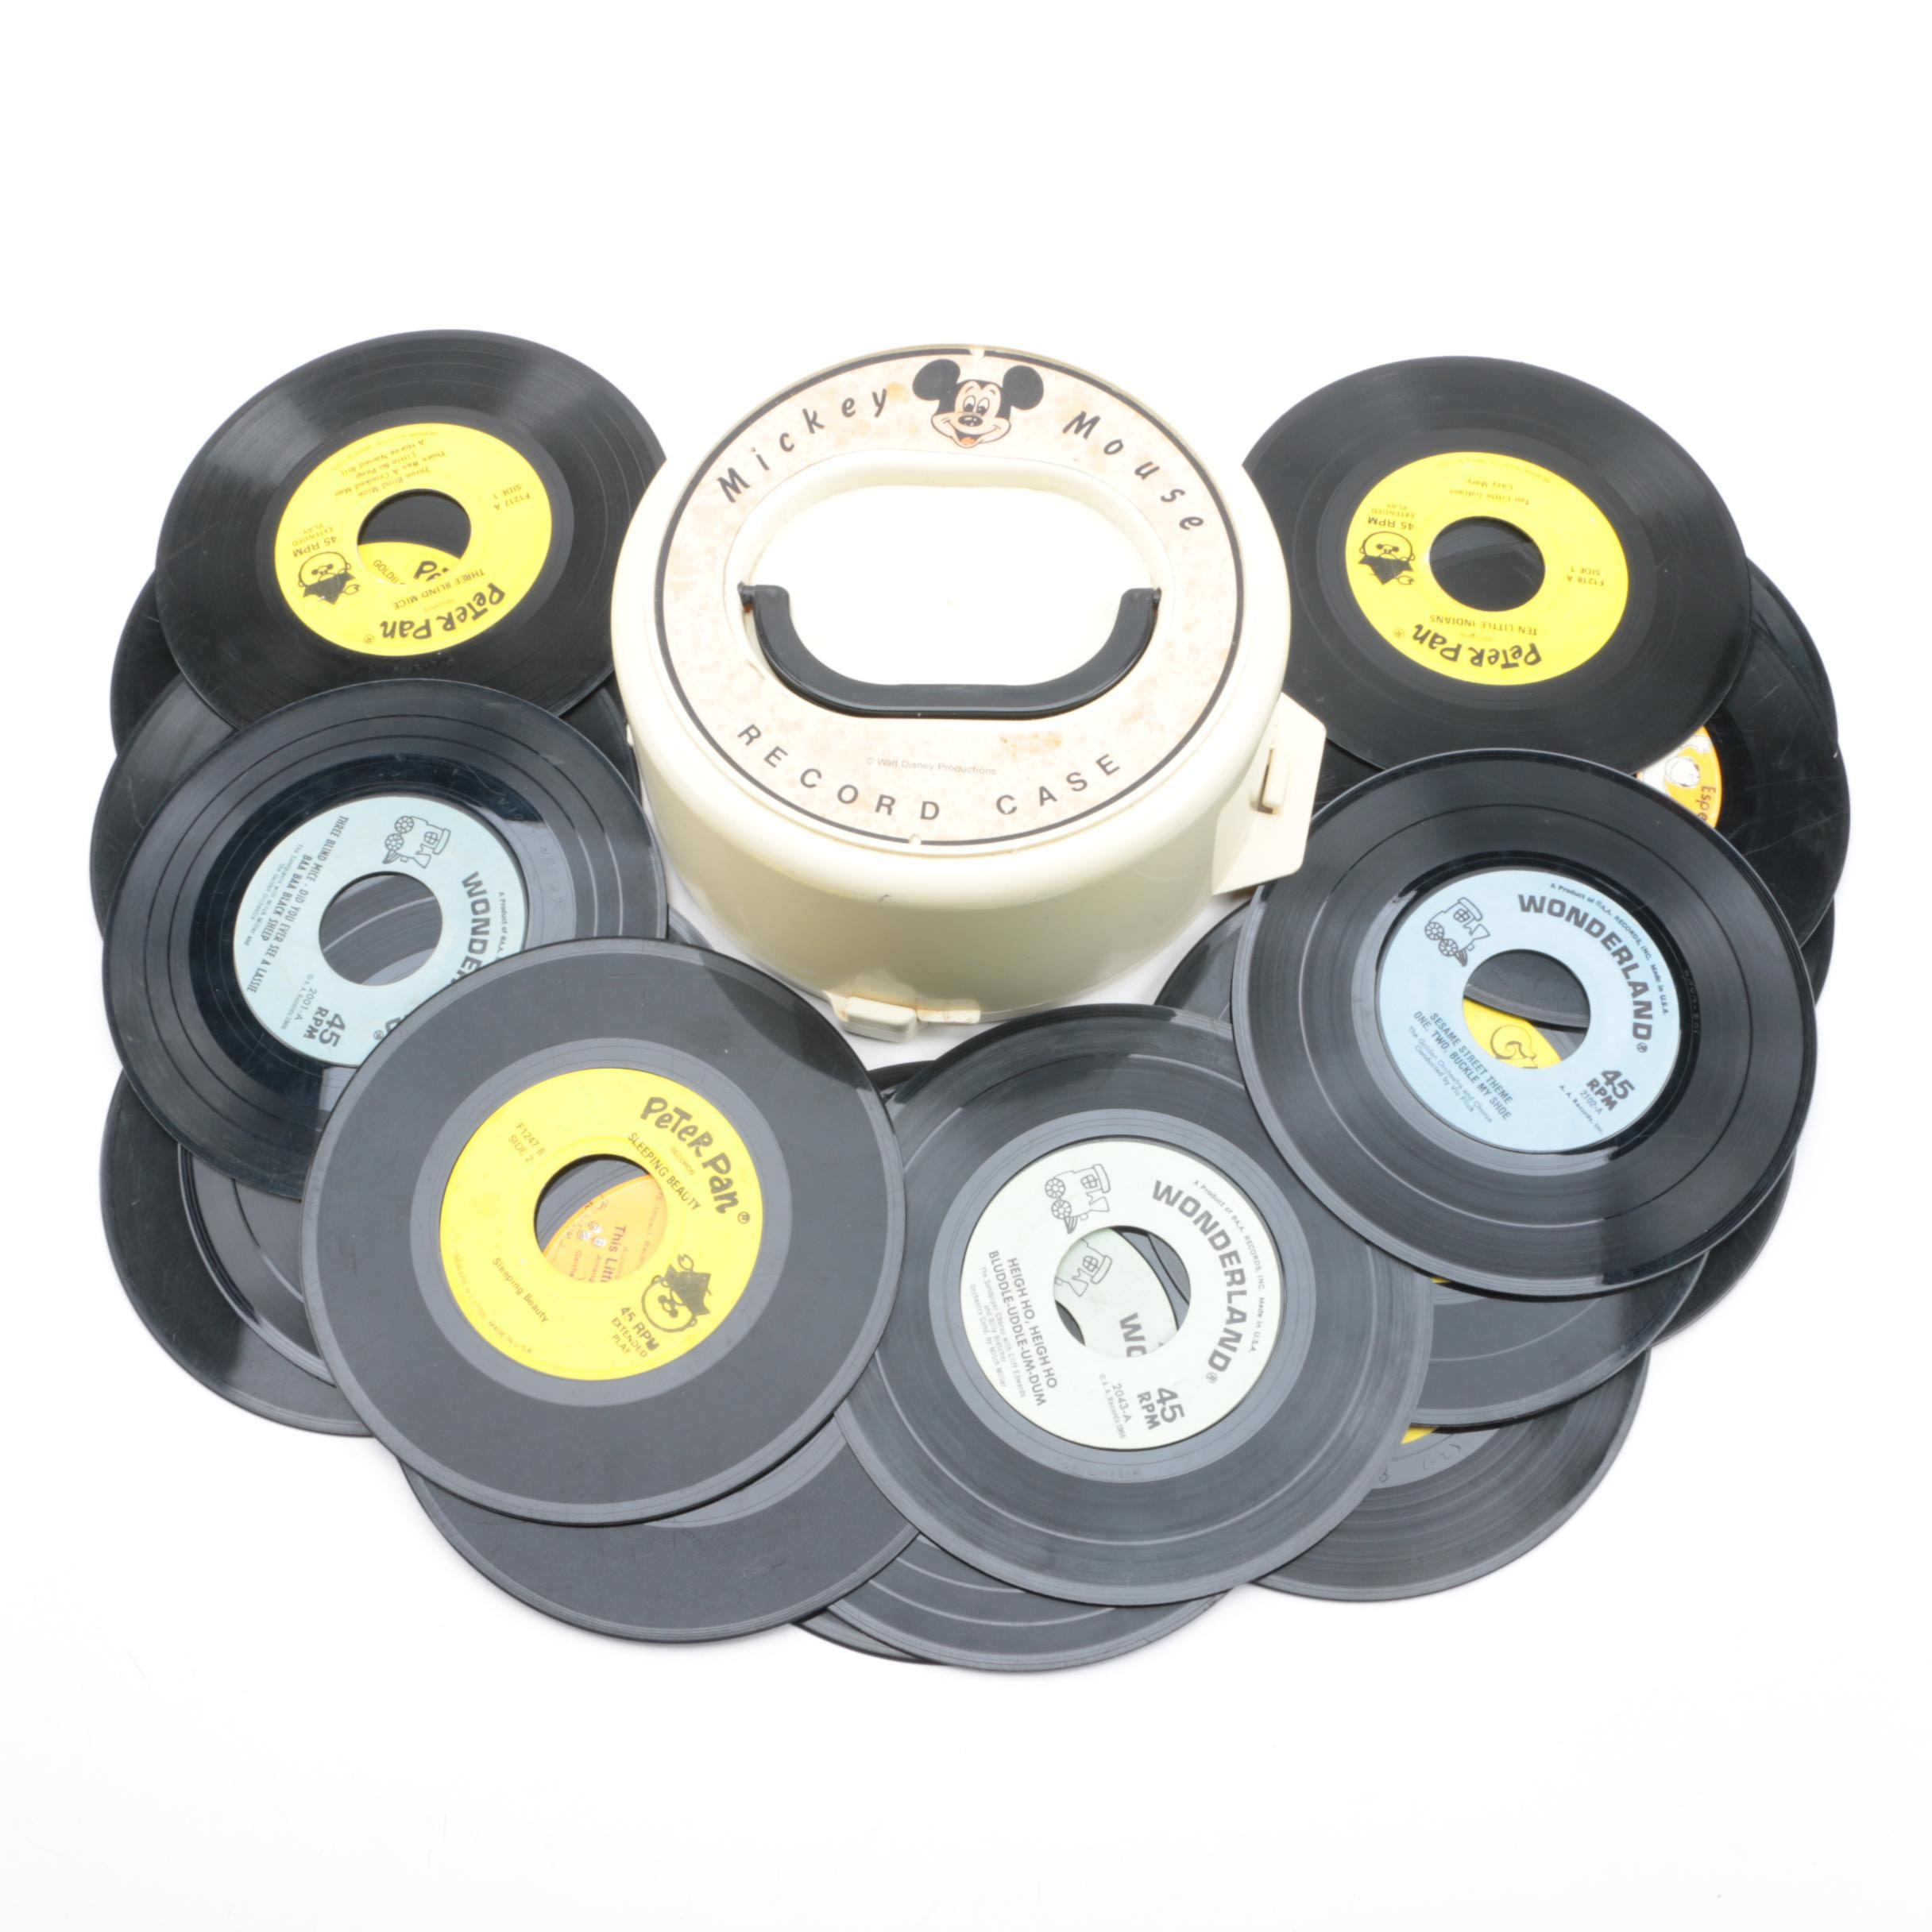 Vintage Children's 45 RPM Singles and Plastic Mickey Mouse Case